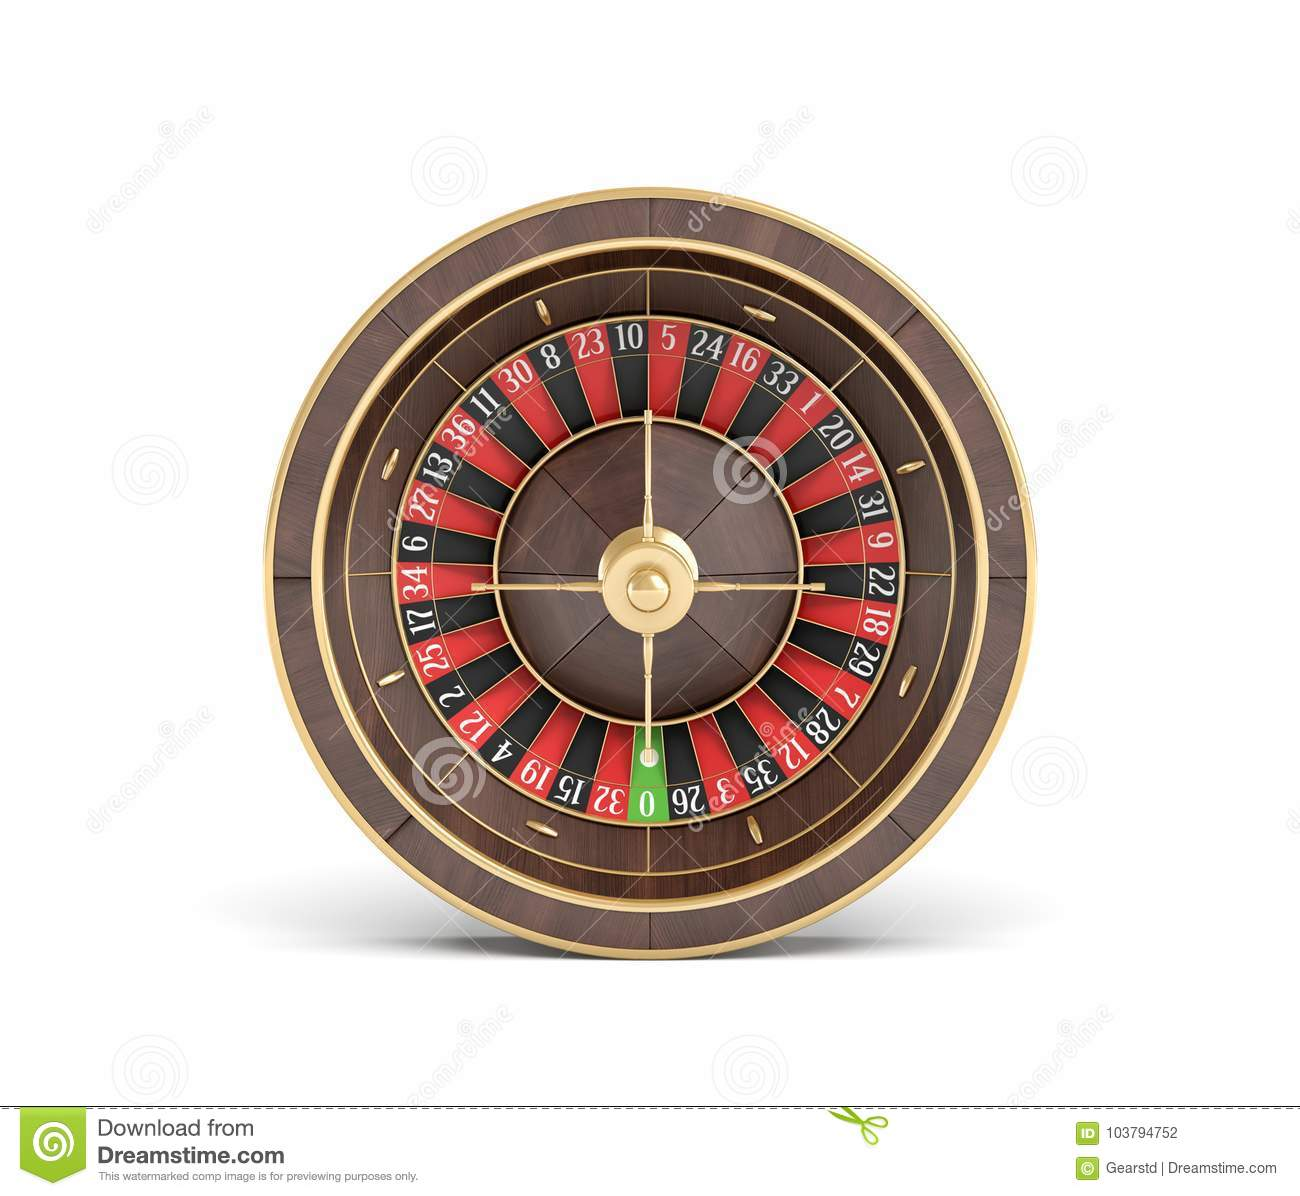 3d rendering of an wooden casino roulette with golden decorations on white background.